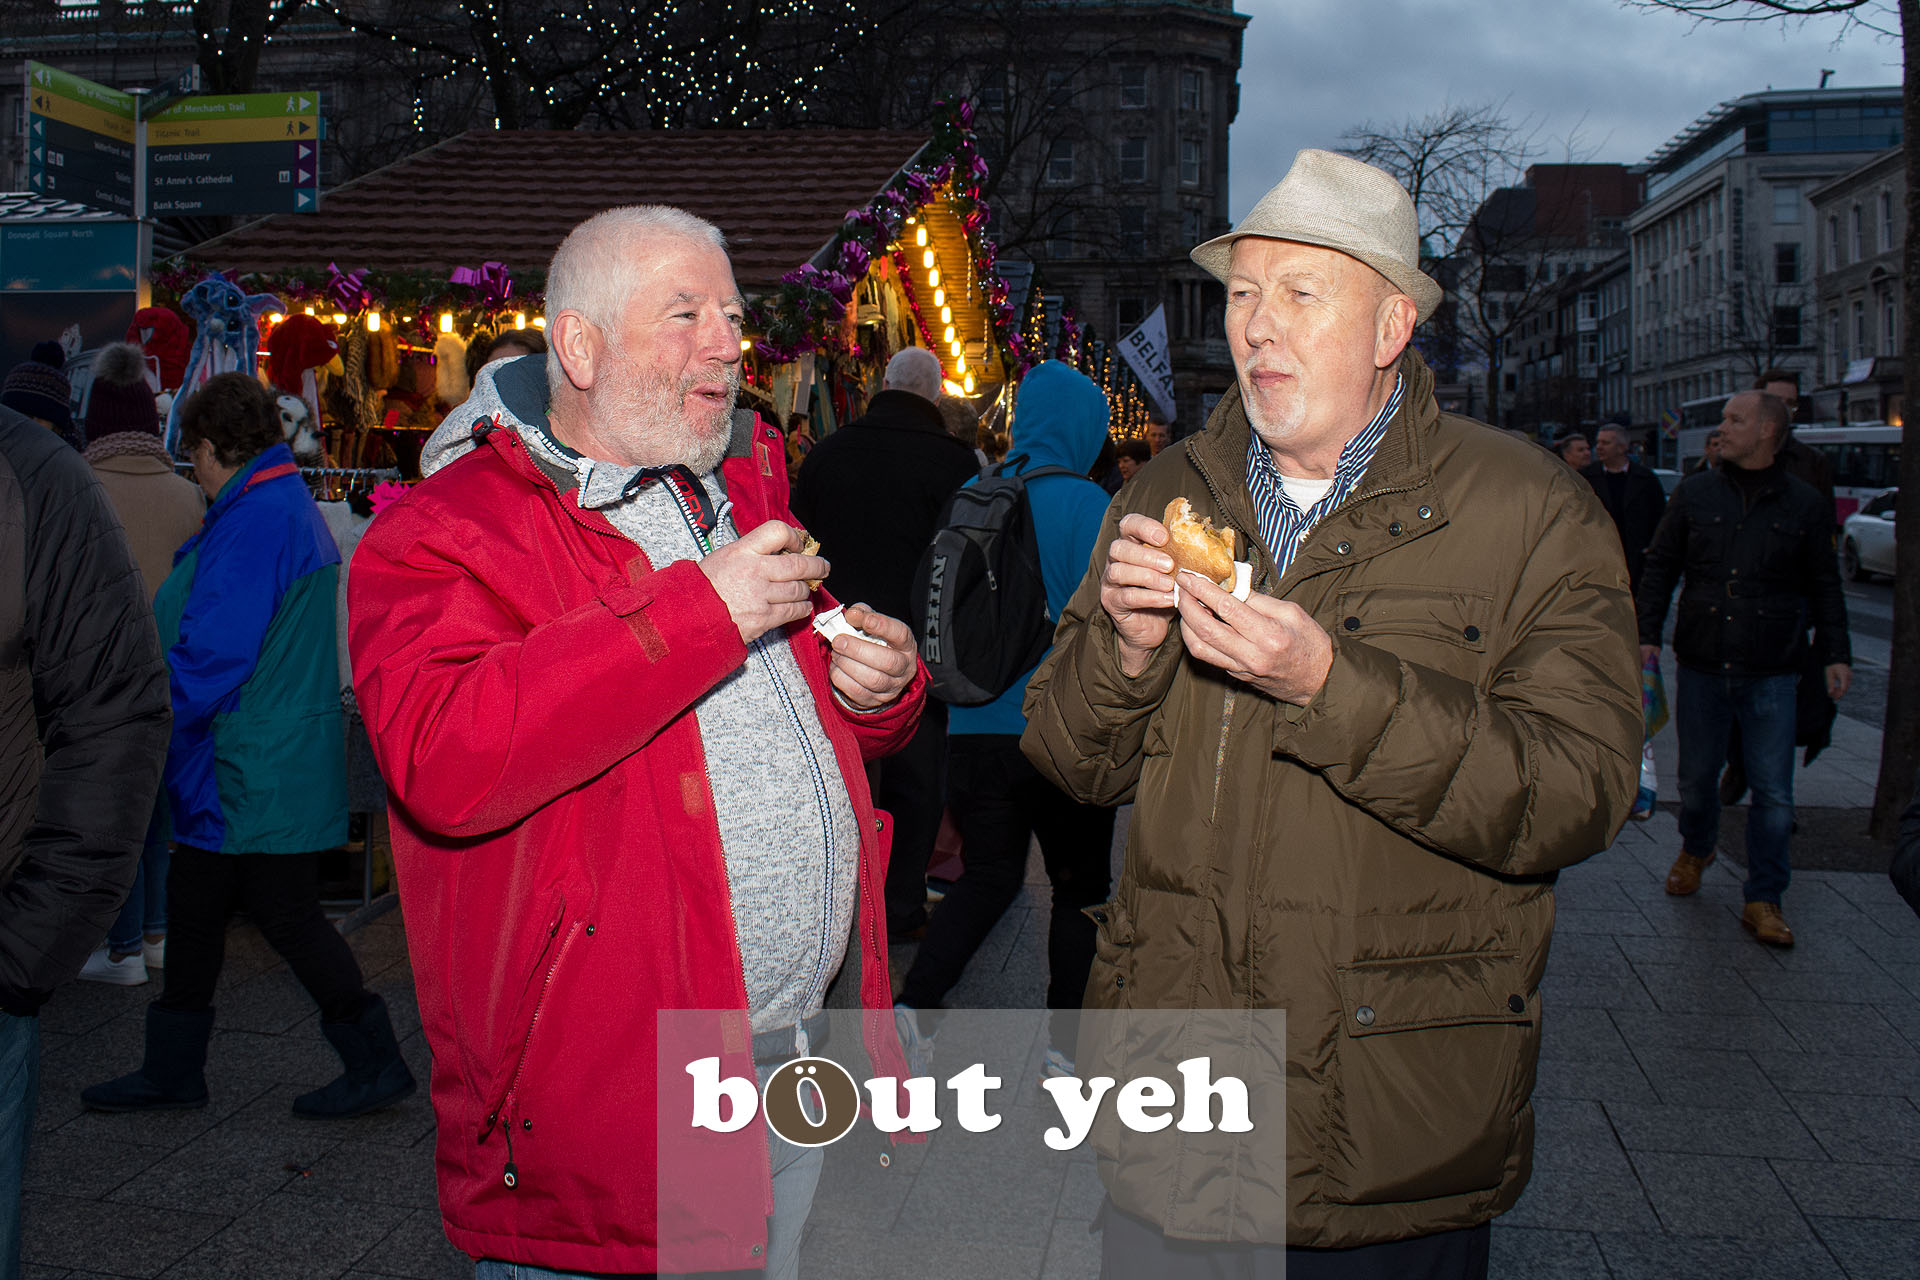 Middle aged men eating burgers in Belfast city centre. Photo 3265.